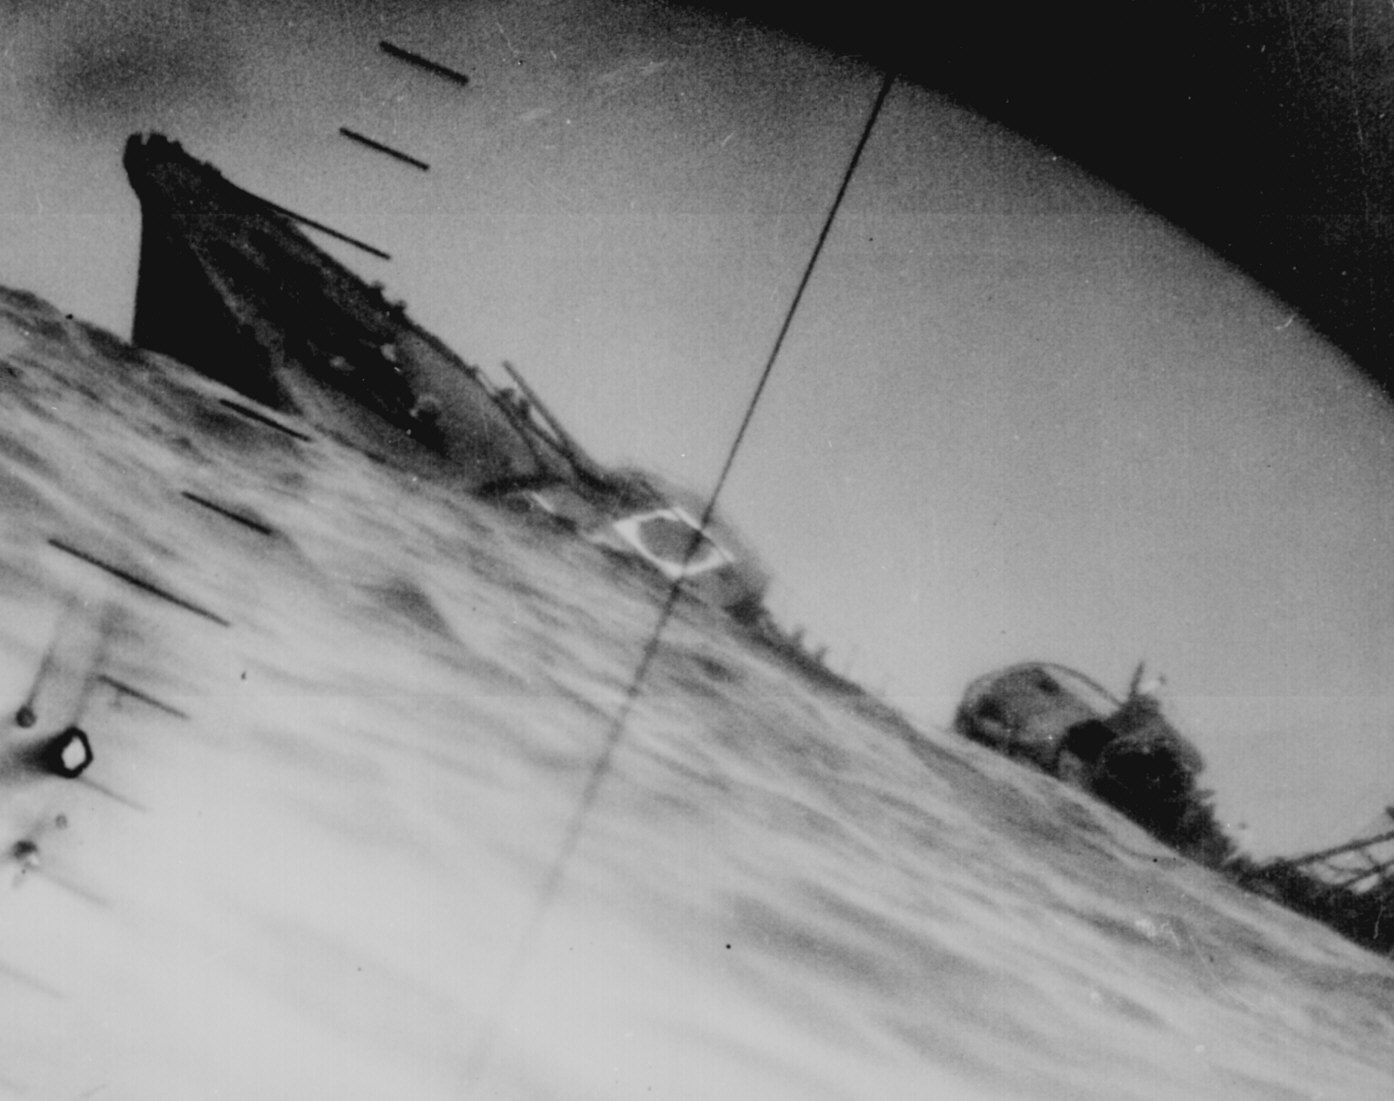 torpedoed japanese destroyer photographed through periscope of uss wahoo or uss nautilus